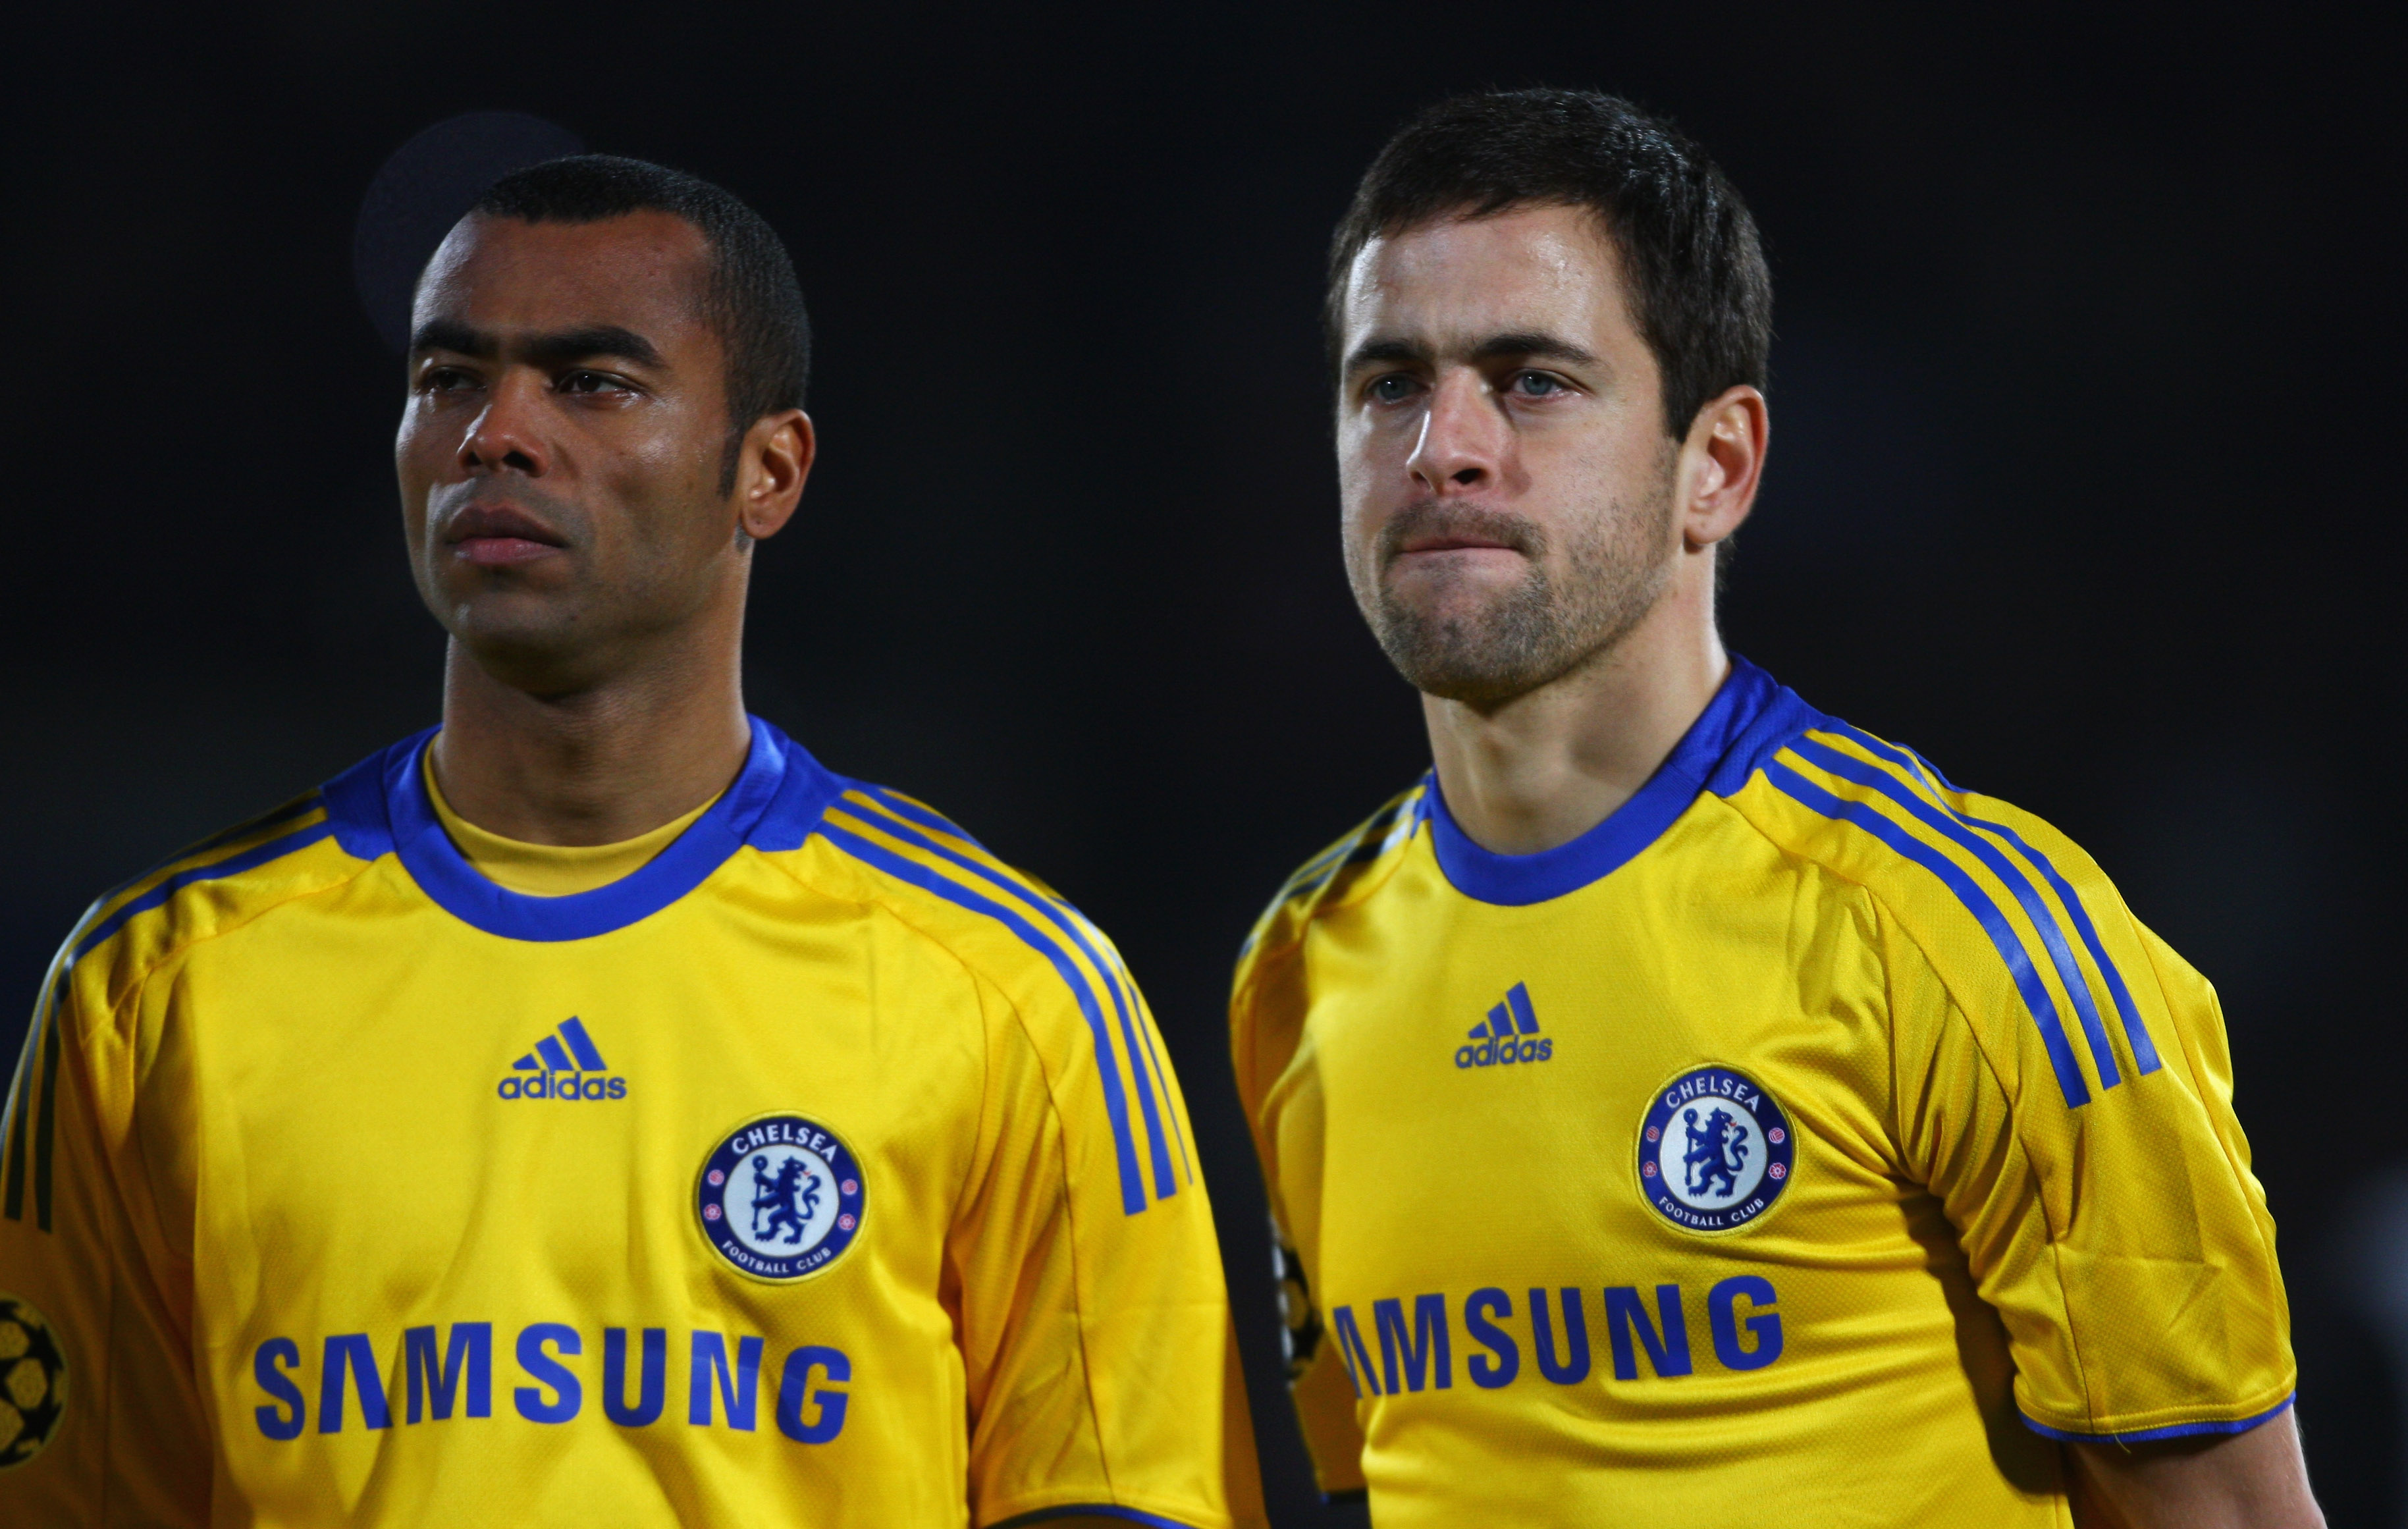 Chelsea legends Ashley Cole and Joe Cole back training with Blues